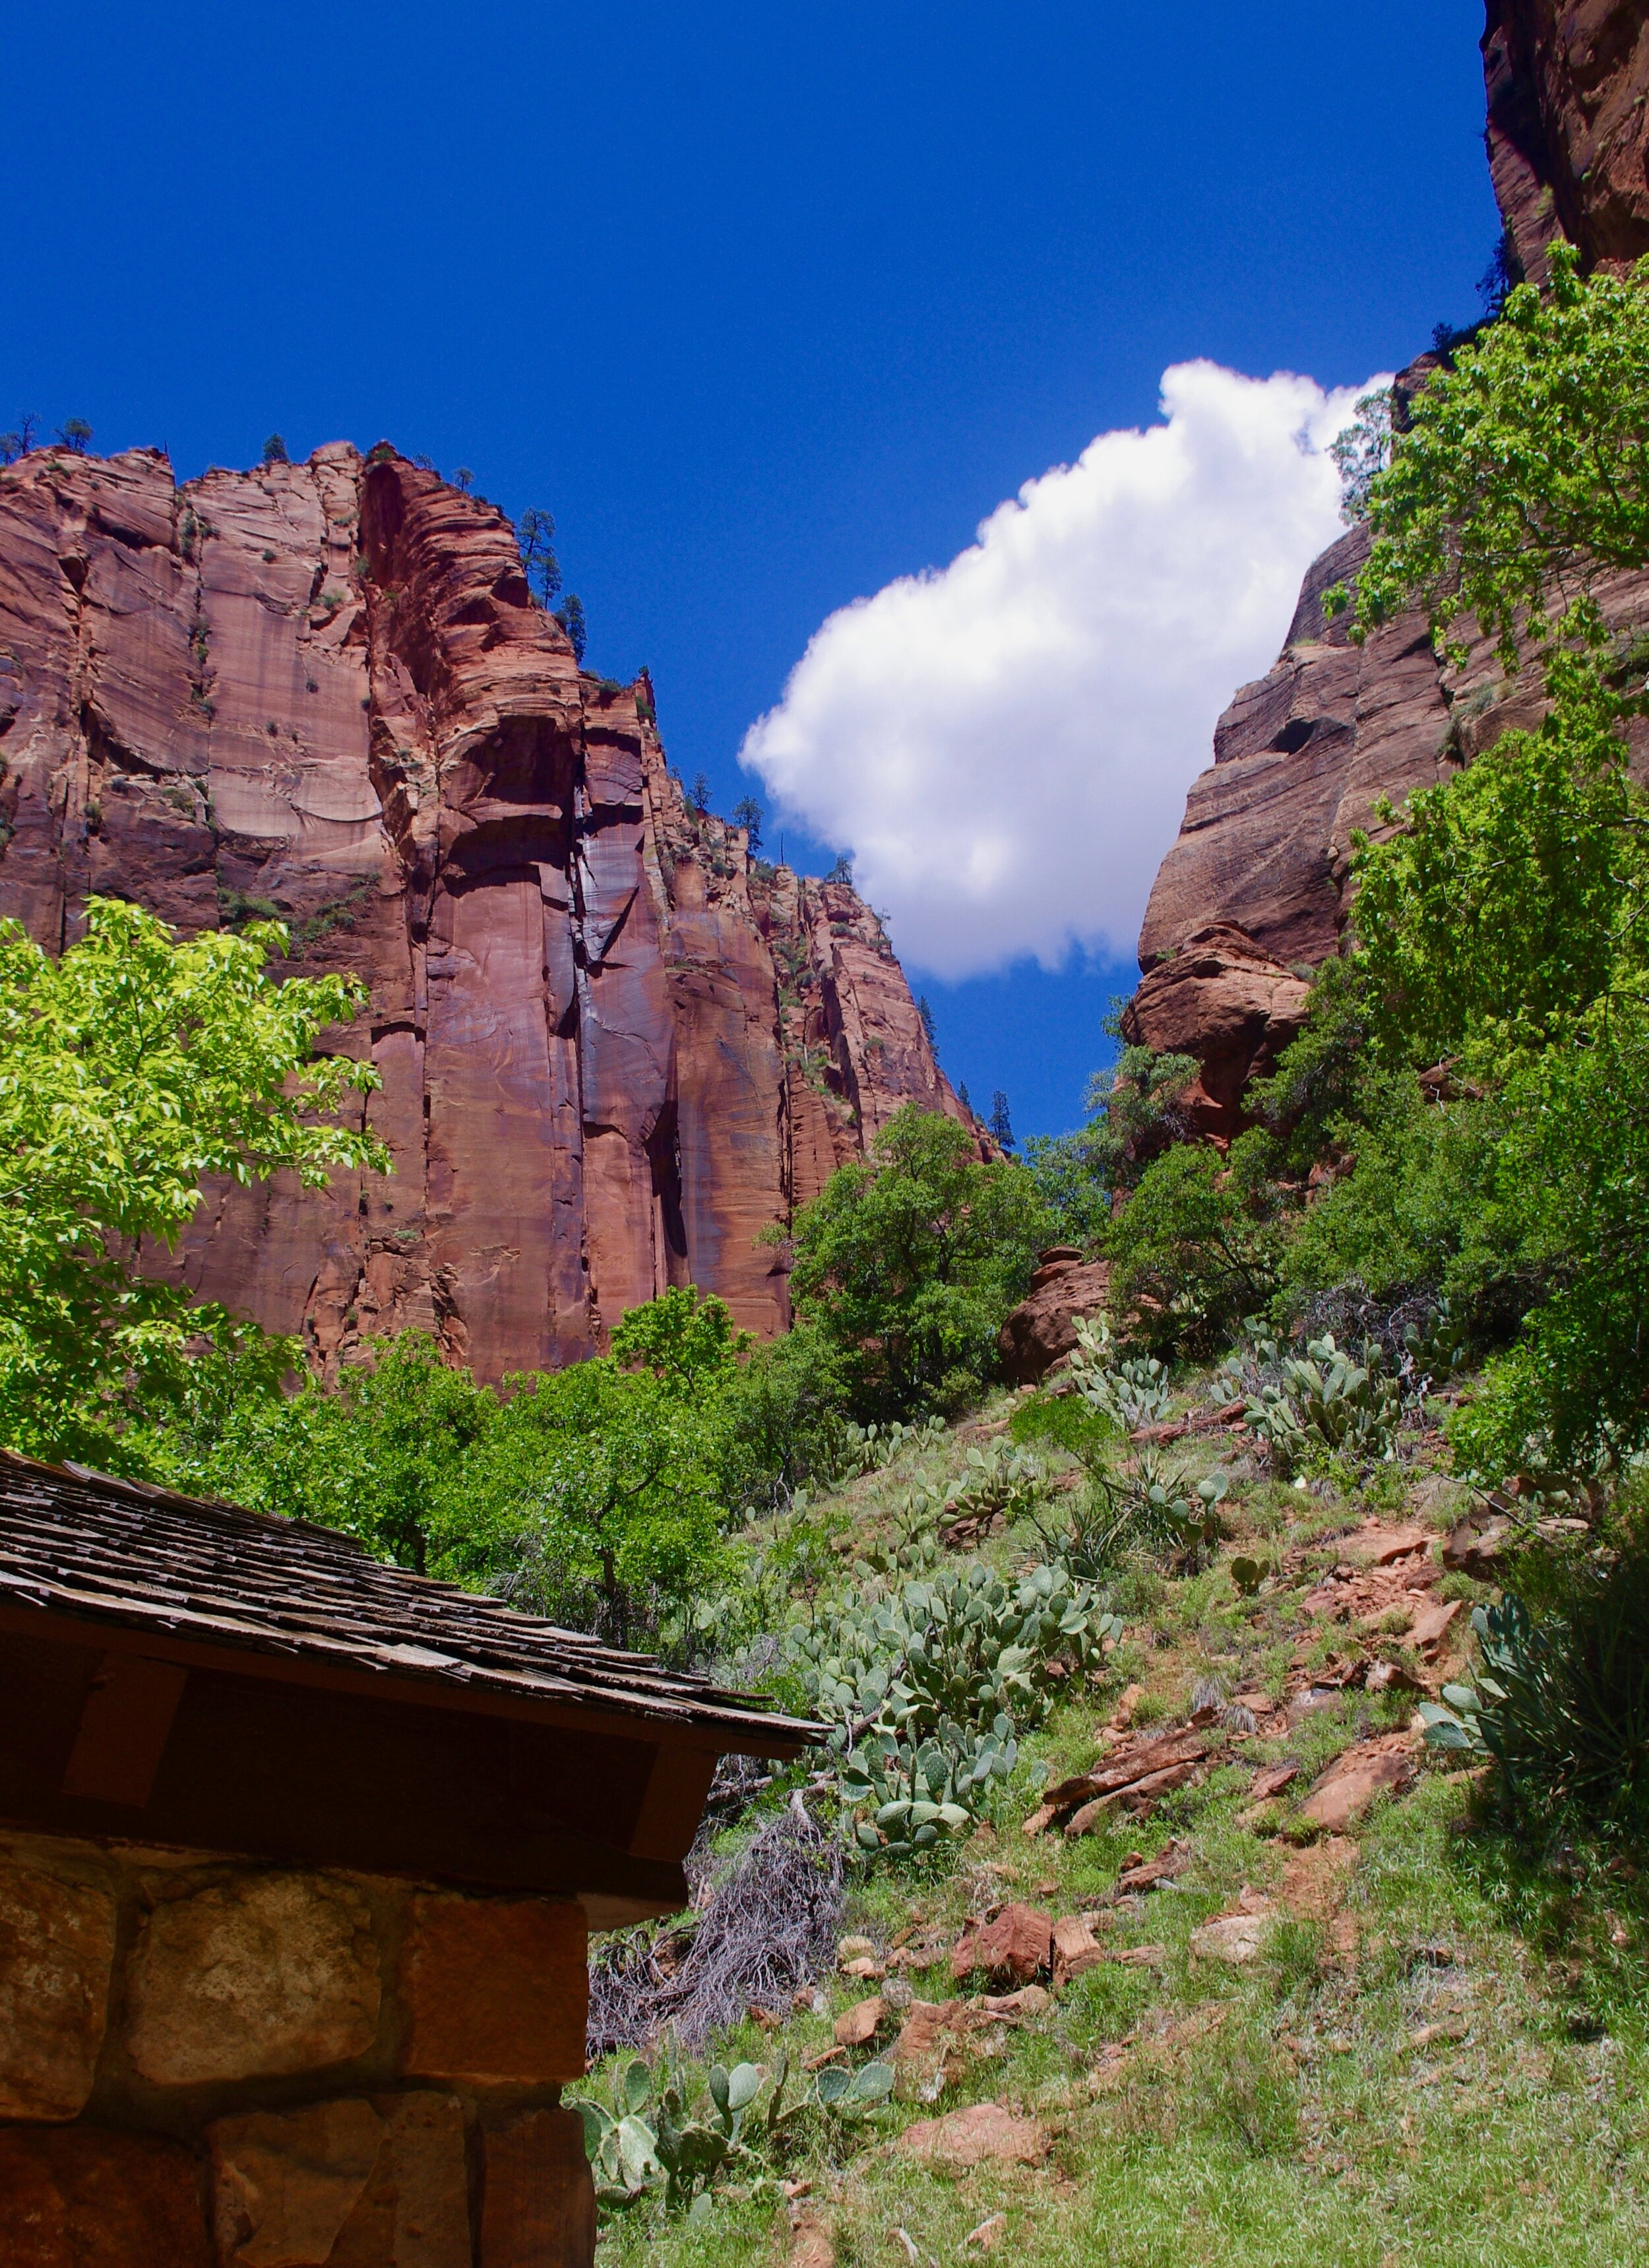 The views at Zion National Park are all vertical. One spends a great deal of one's time resting one's head on the back of one's neck while trying not to fall over.